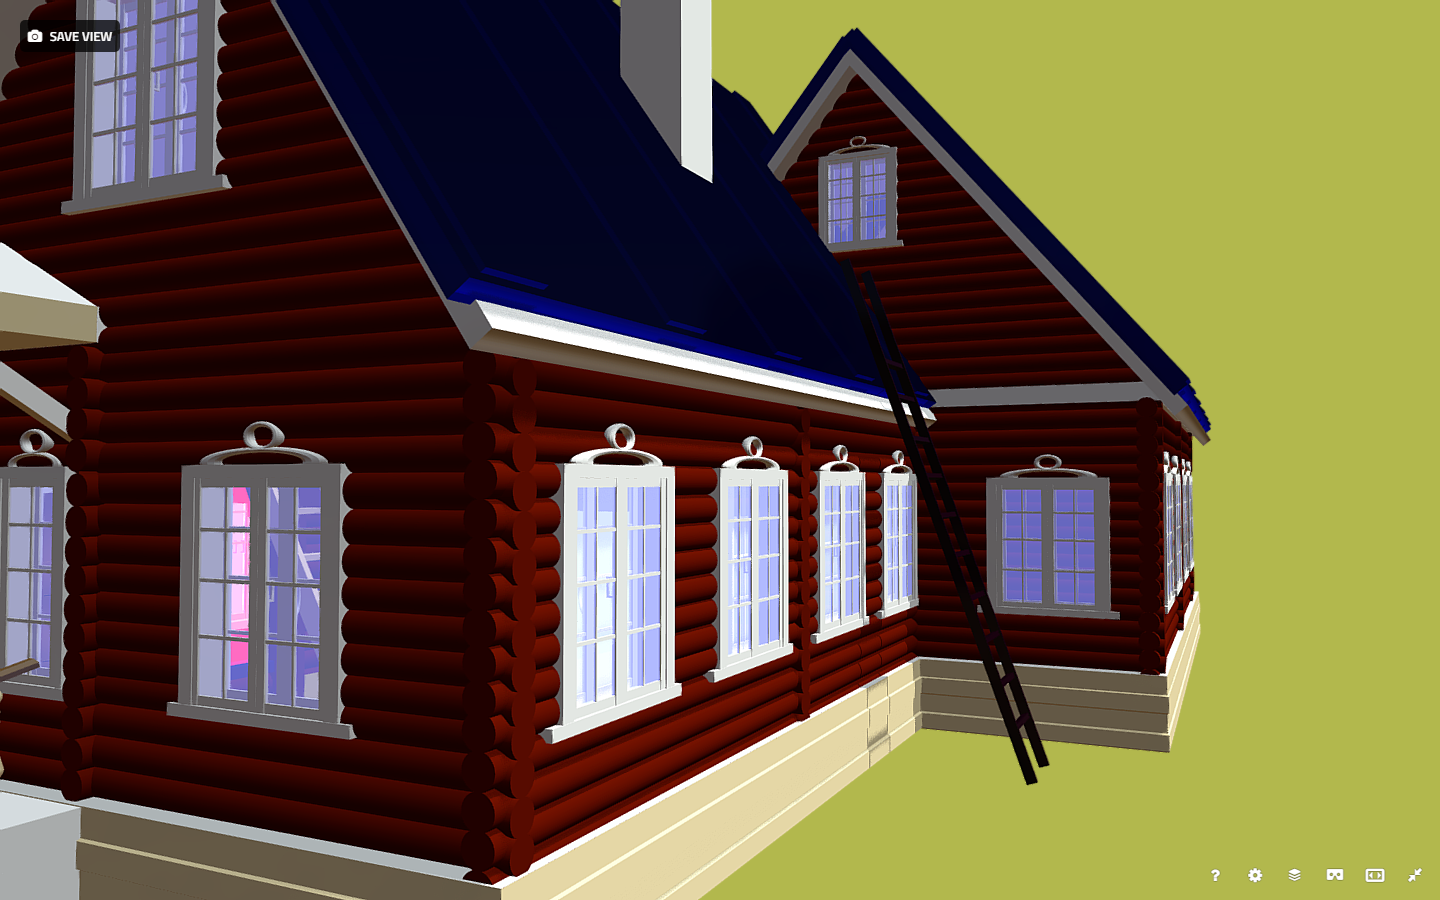 russian wooden house in siberian village 3d model fbx 269915